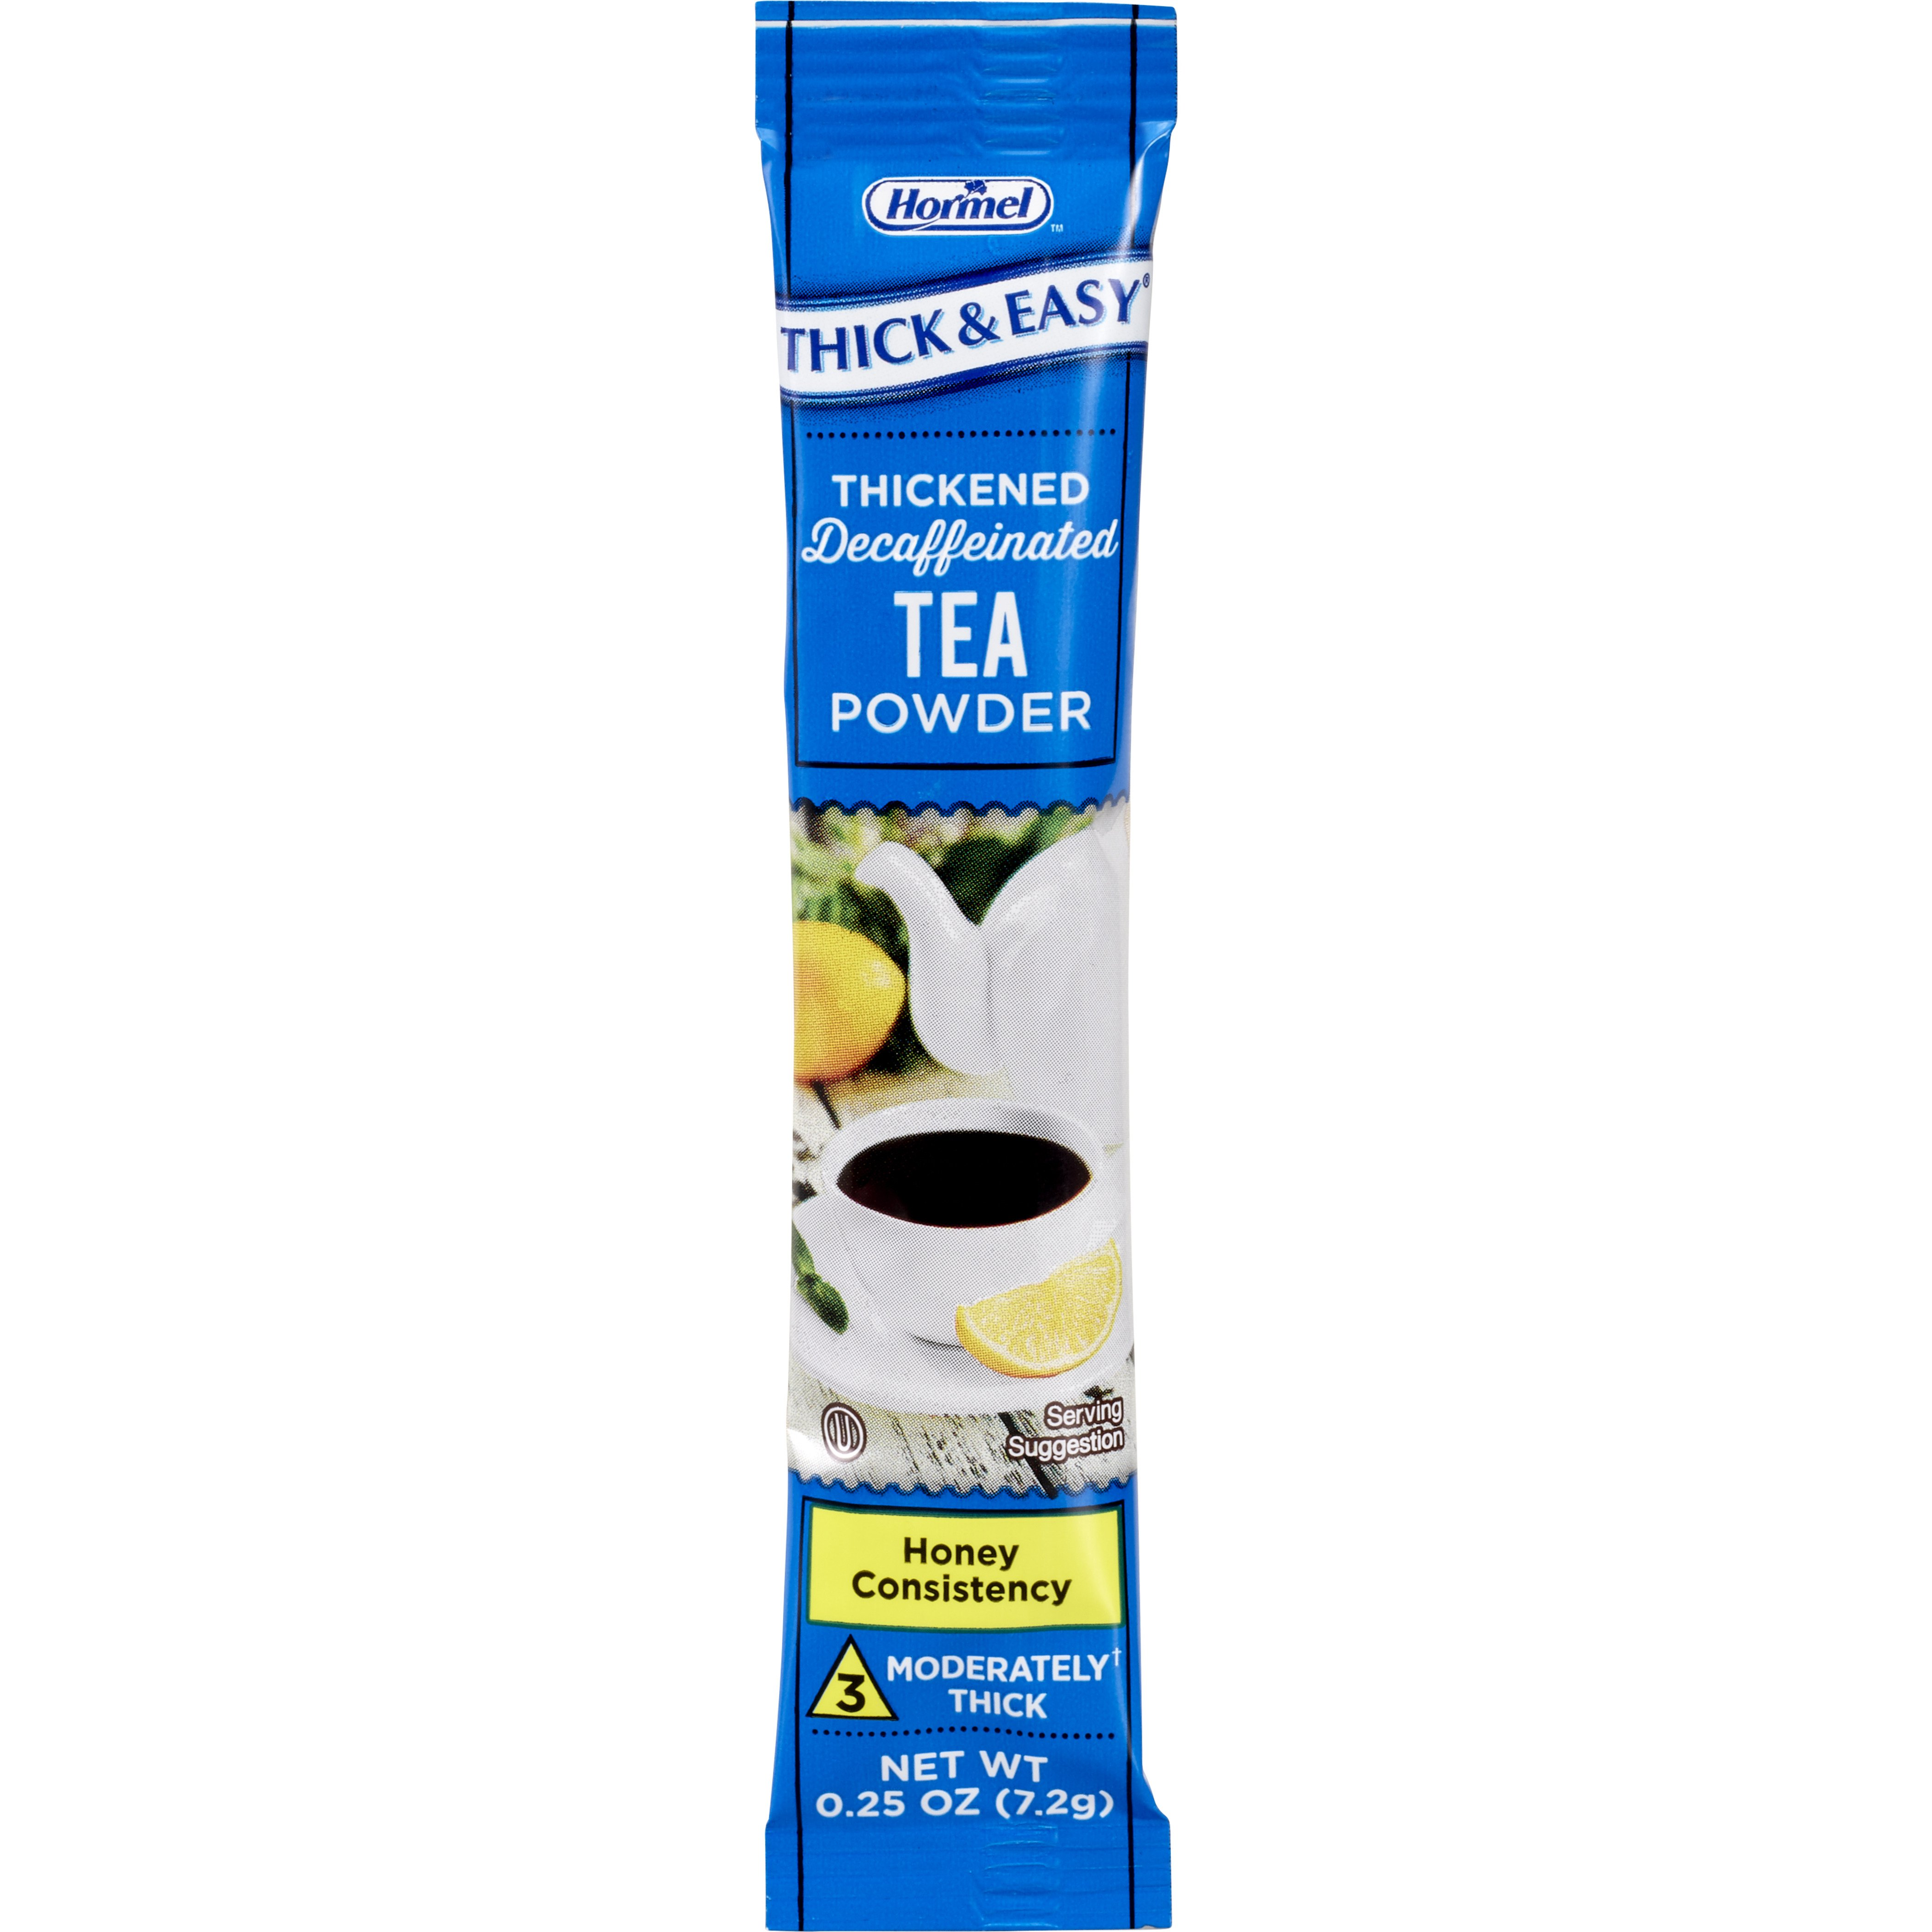 Thick & Easy Decaffeinated Tea Honey Consistency Thickened Beverage, ¼ oz. Packet of Powder, 81332, Case of 72